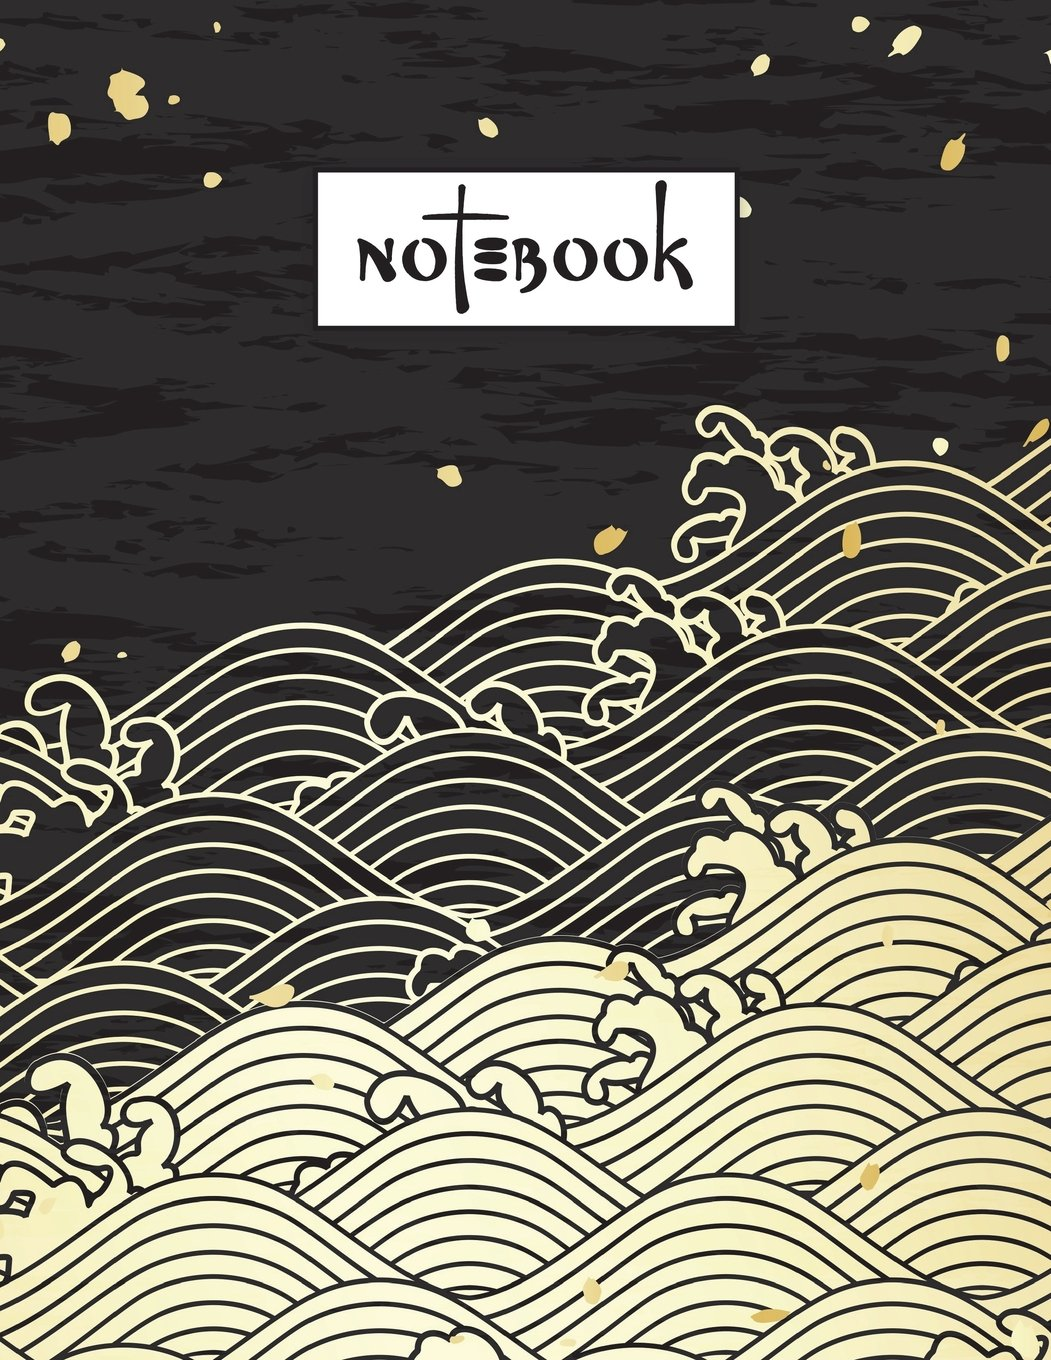 Read Online Notebook: Japanese Style Bullet Notebook  Journal Composition Book Small Dot Grid Paper for Drawing Writing Journaling Notes & Lettering  Large (8.5 x 11) Matte Softcover (Japanese Notebooks) pdf epub